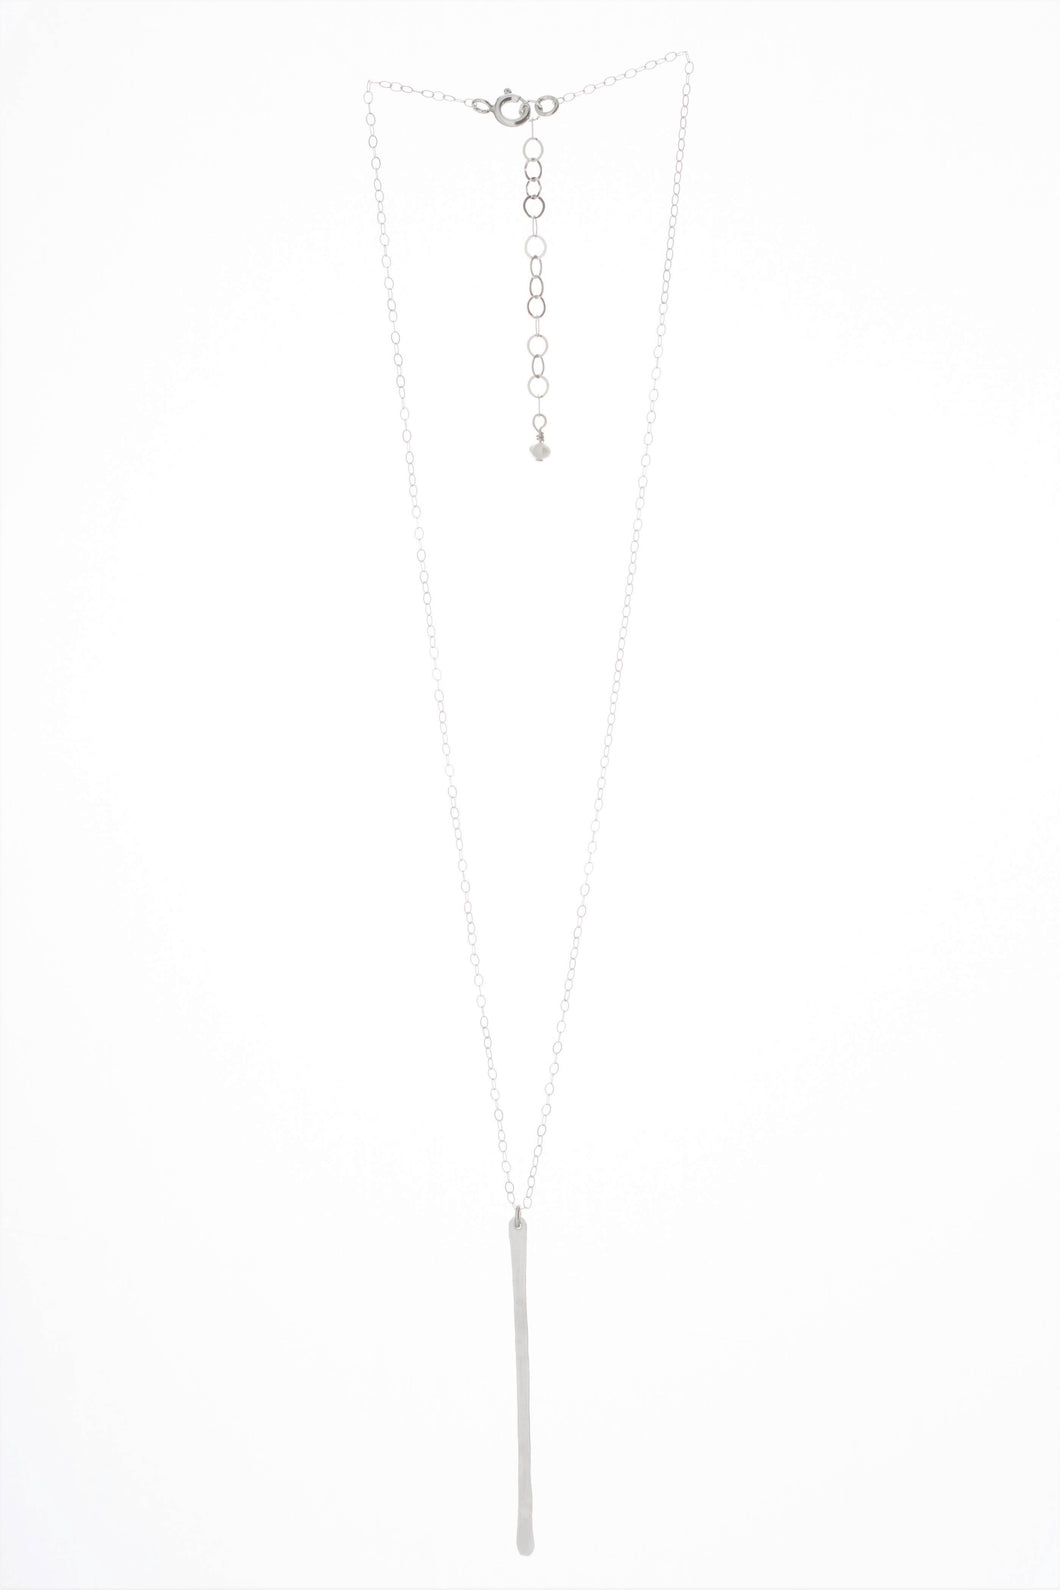 J. Mills Studio - Forged Vertical Bar Necklace - Silver